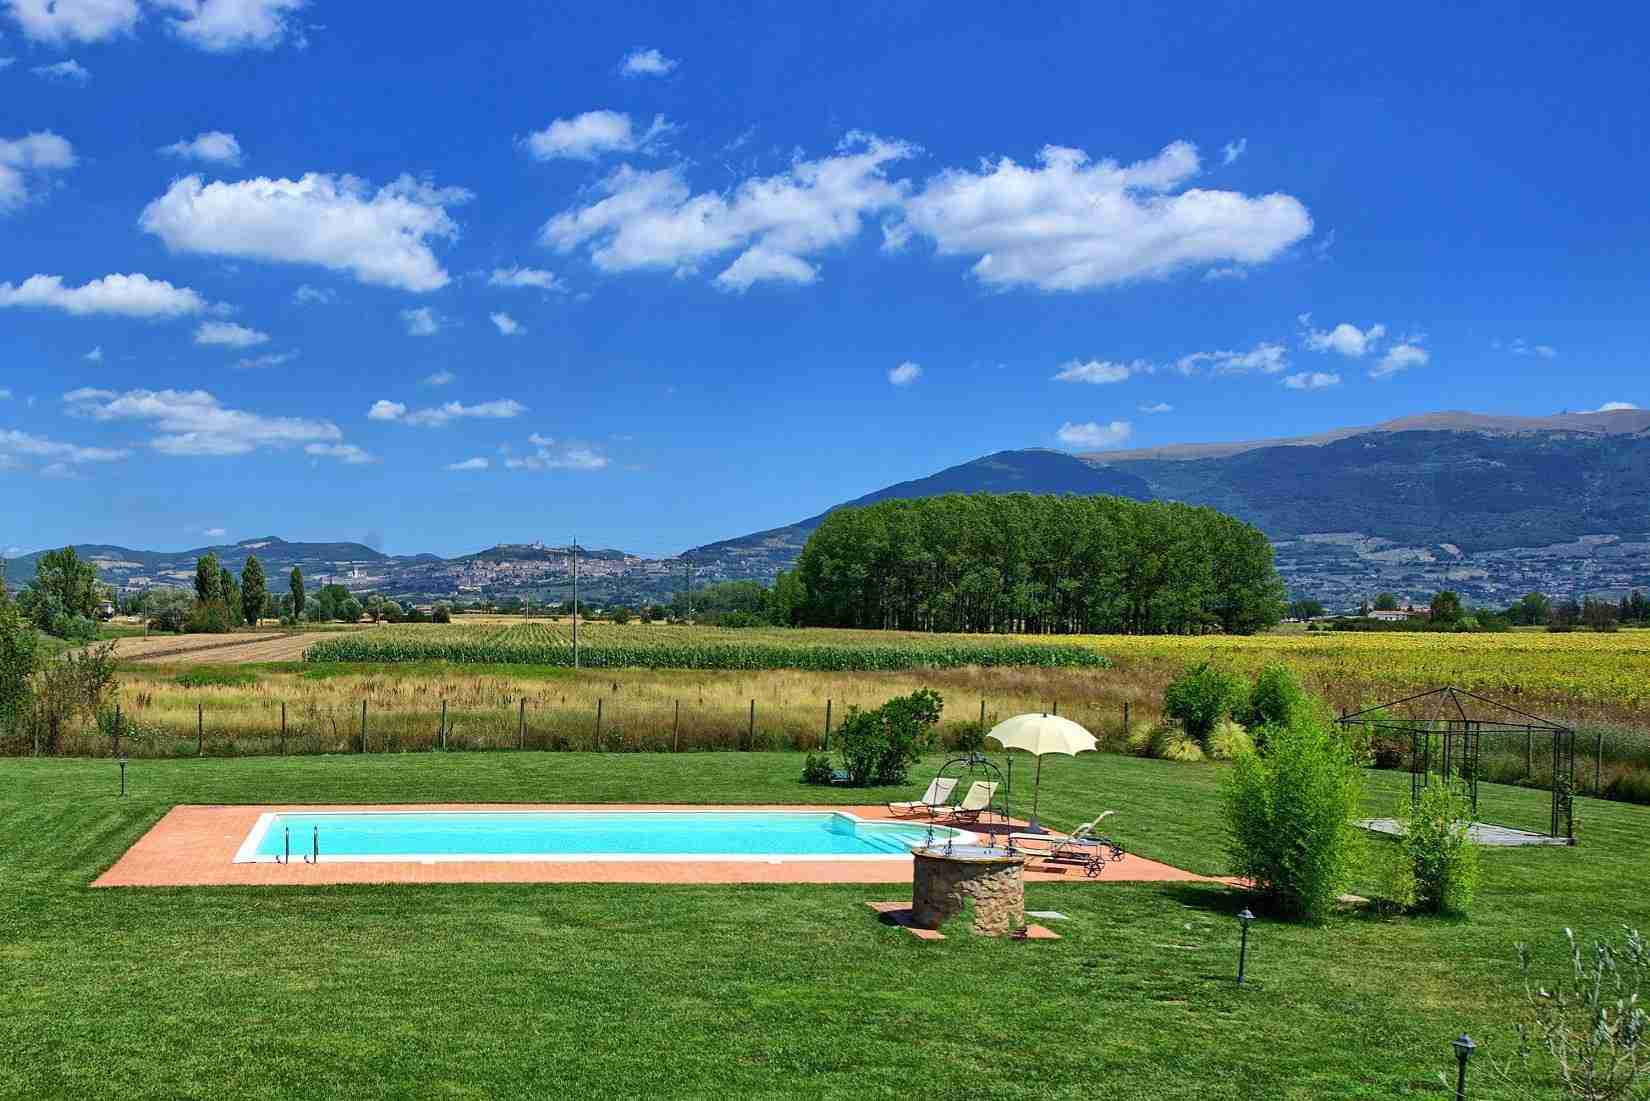 16 Assisi garden with pool